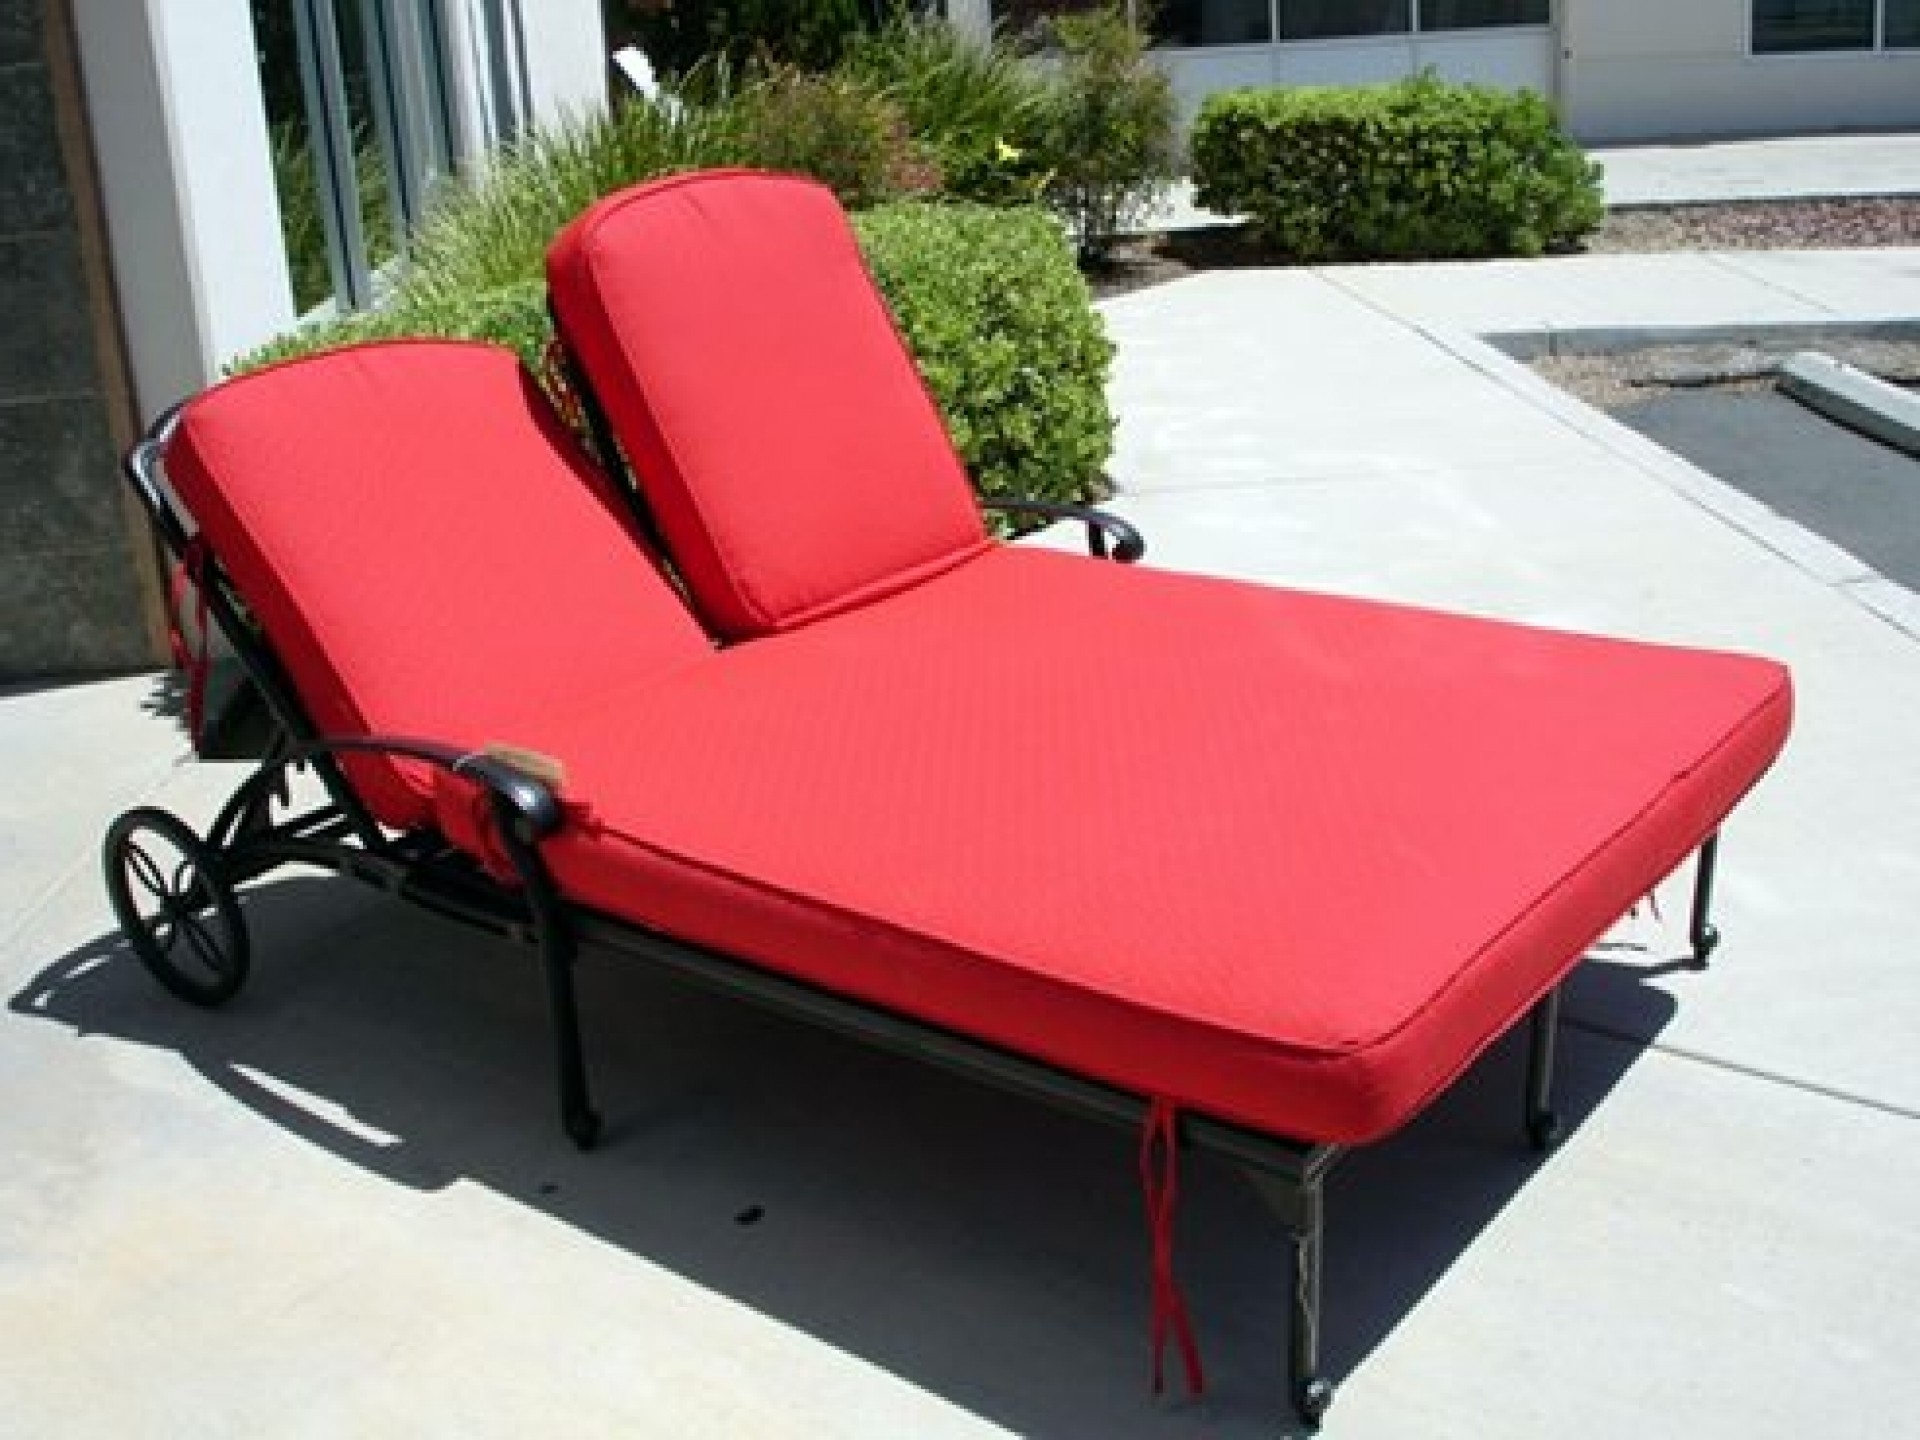 Most Up To Date Cushion For Chaise Lounge Chair • Lounge Chairs Ideas For Double Chaise Lounge Cushions (View 9 of 15)